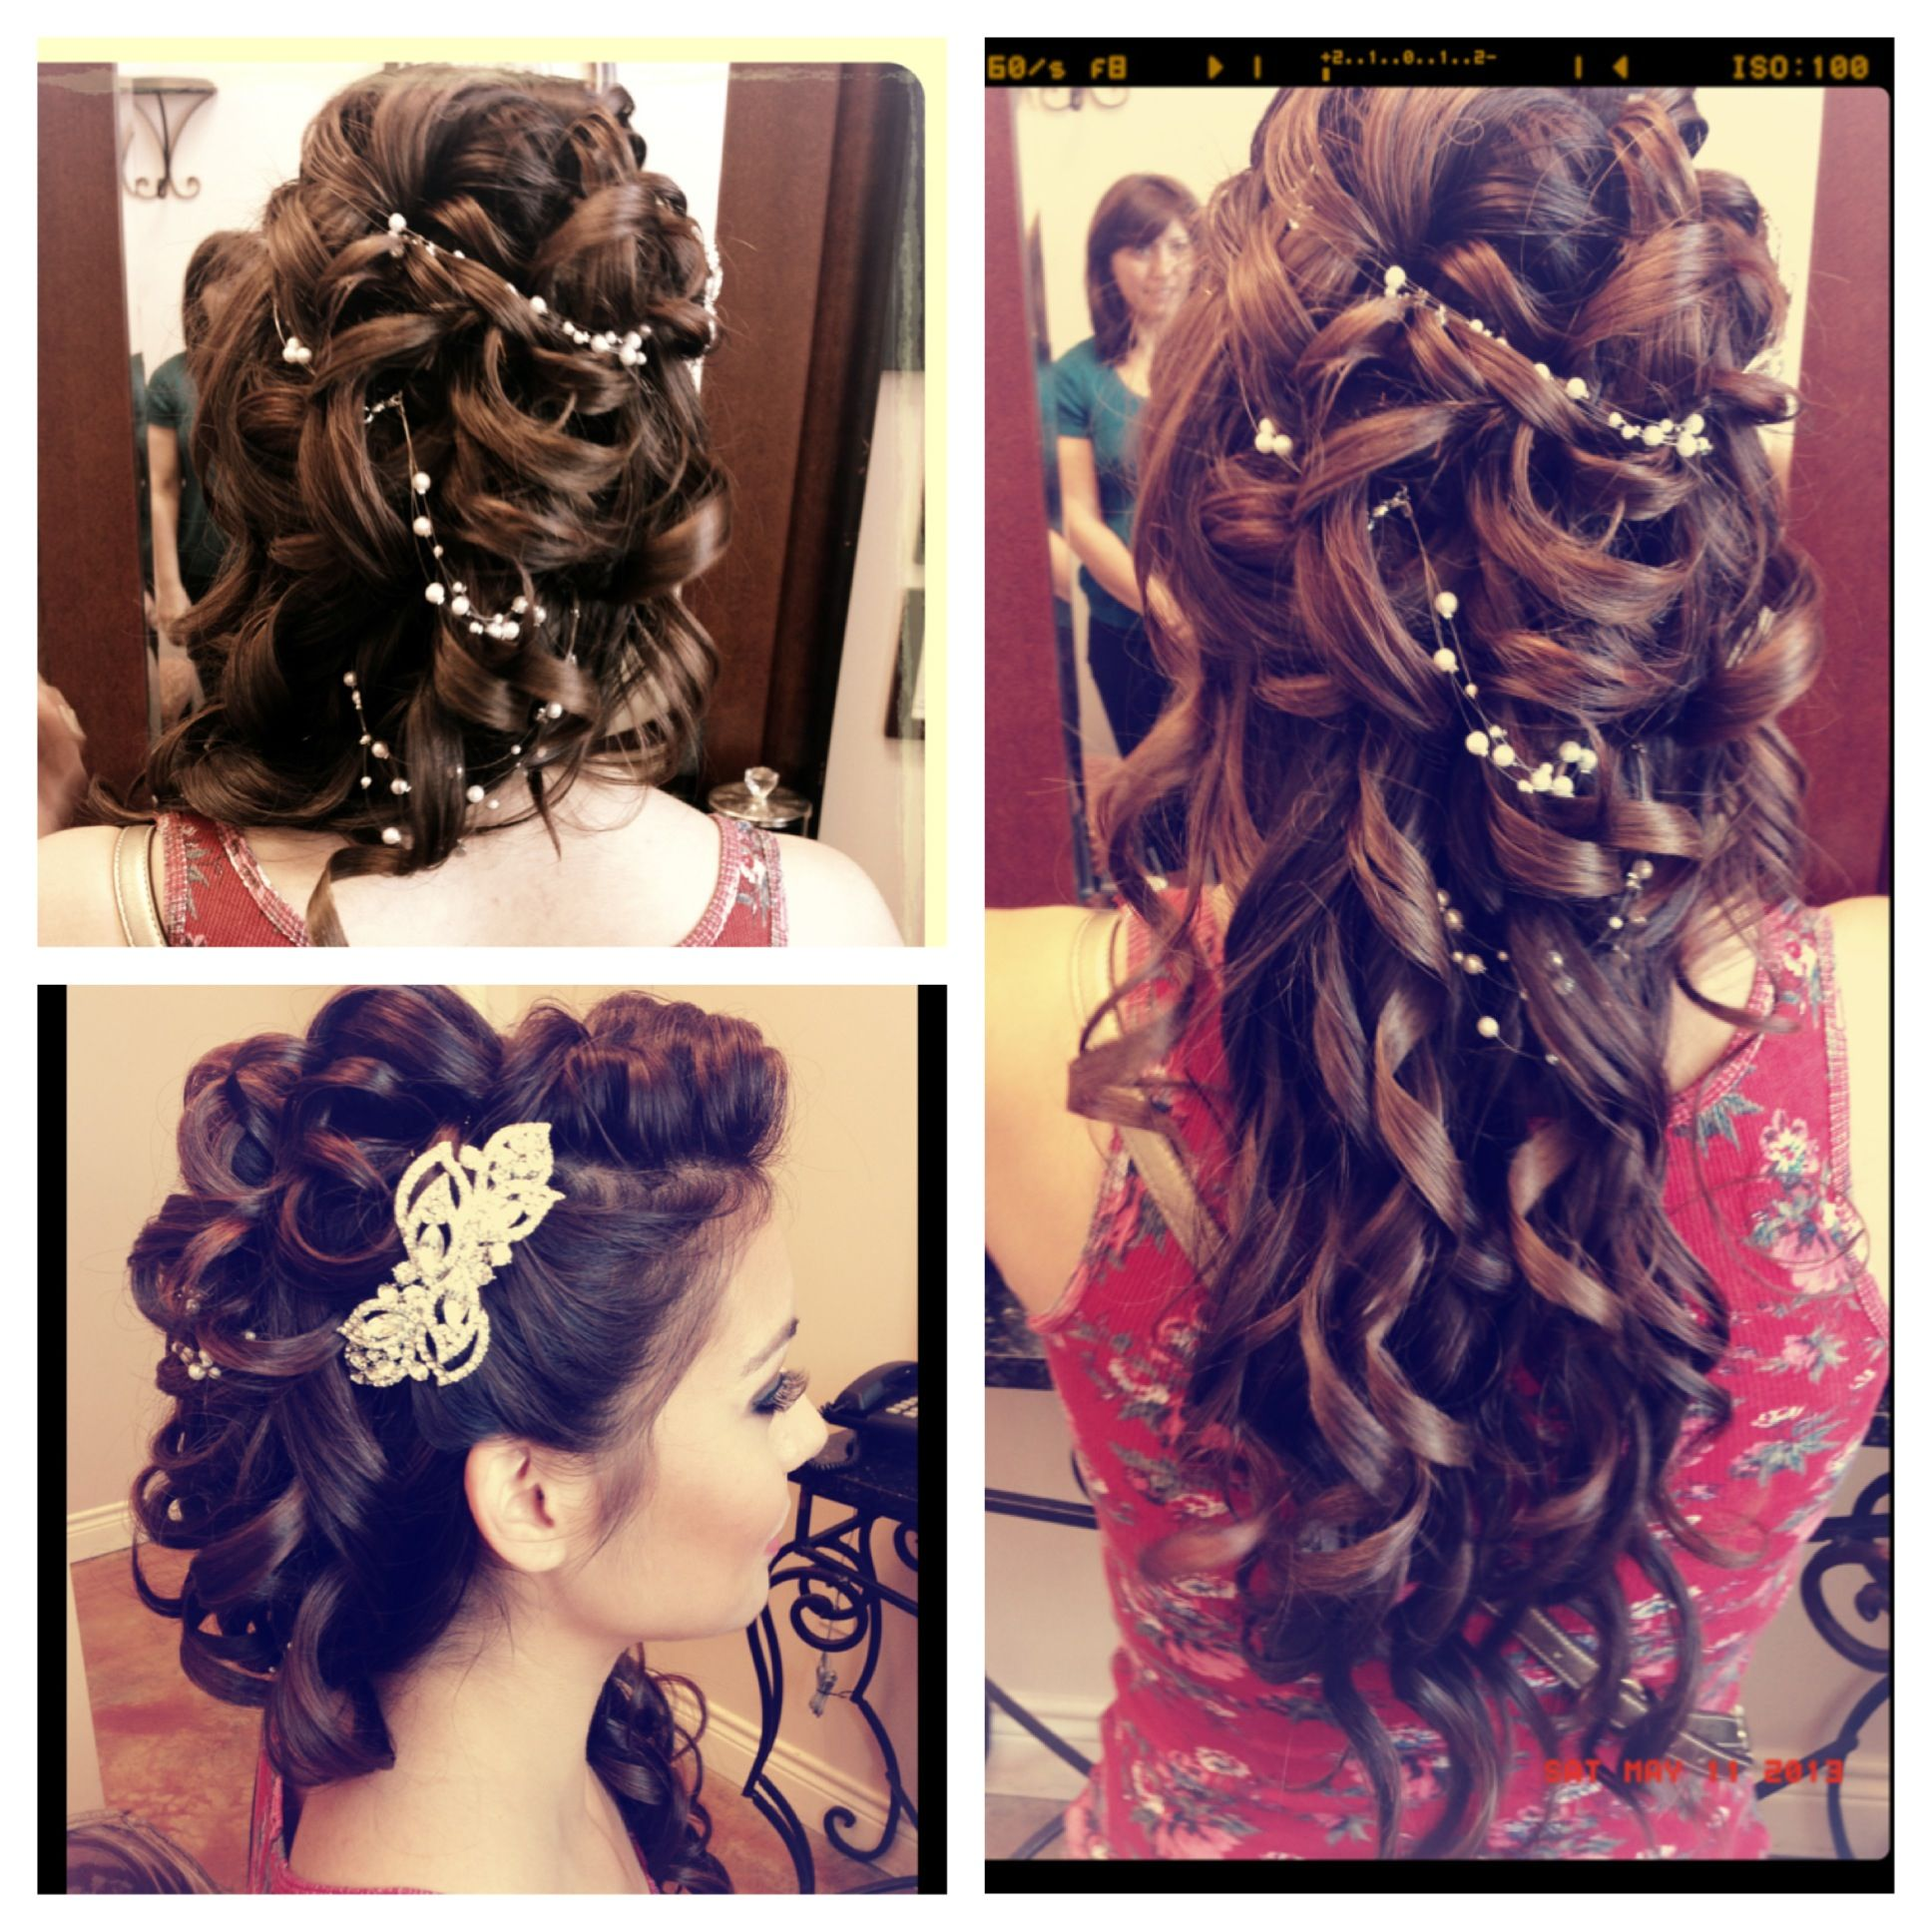 Hairstyles For A Quinceanera Hairstyles For Sweet 16 Sweet 16 Pinterest Sweet 16